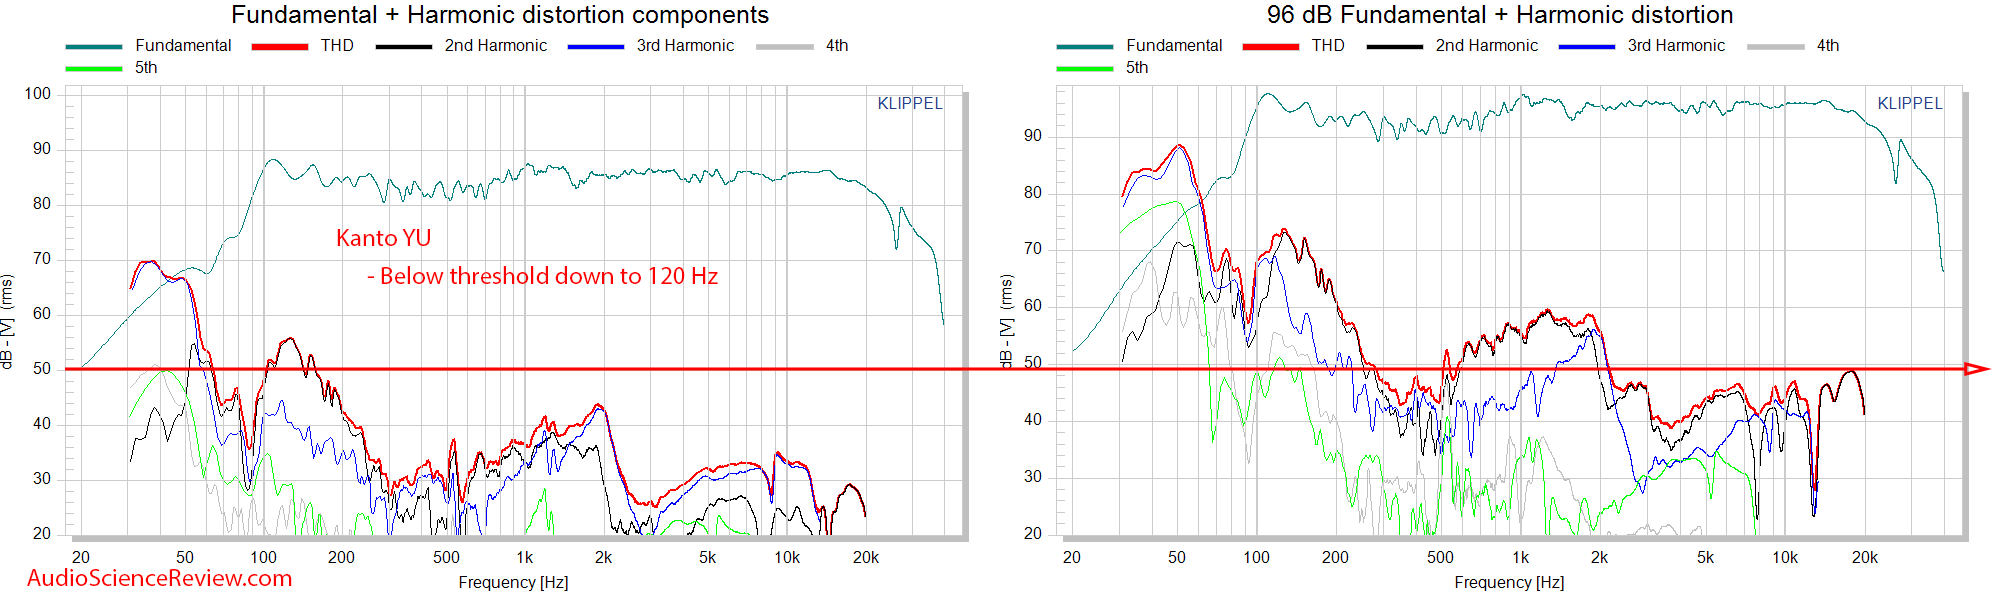 Kanto YU THD distortion measurements powered PC speaker.png